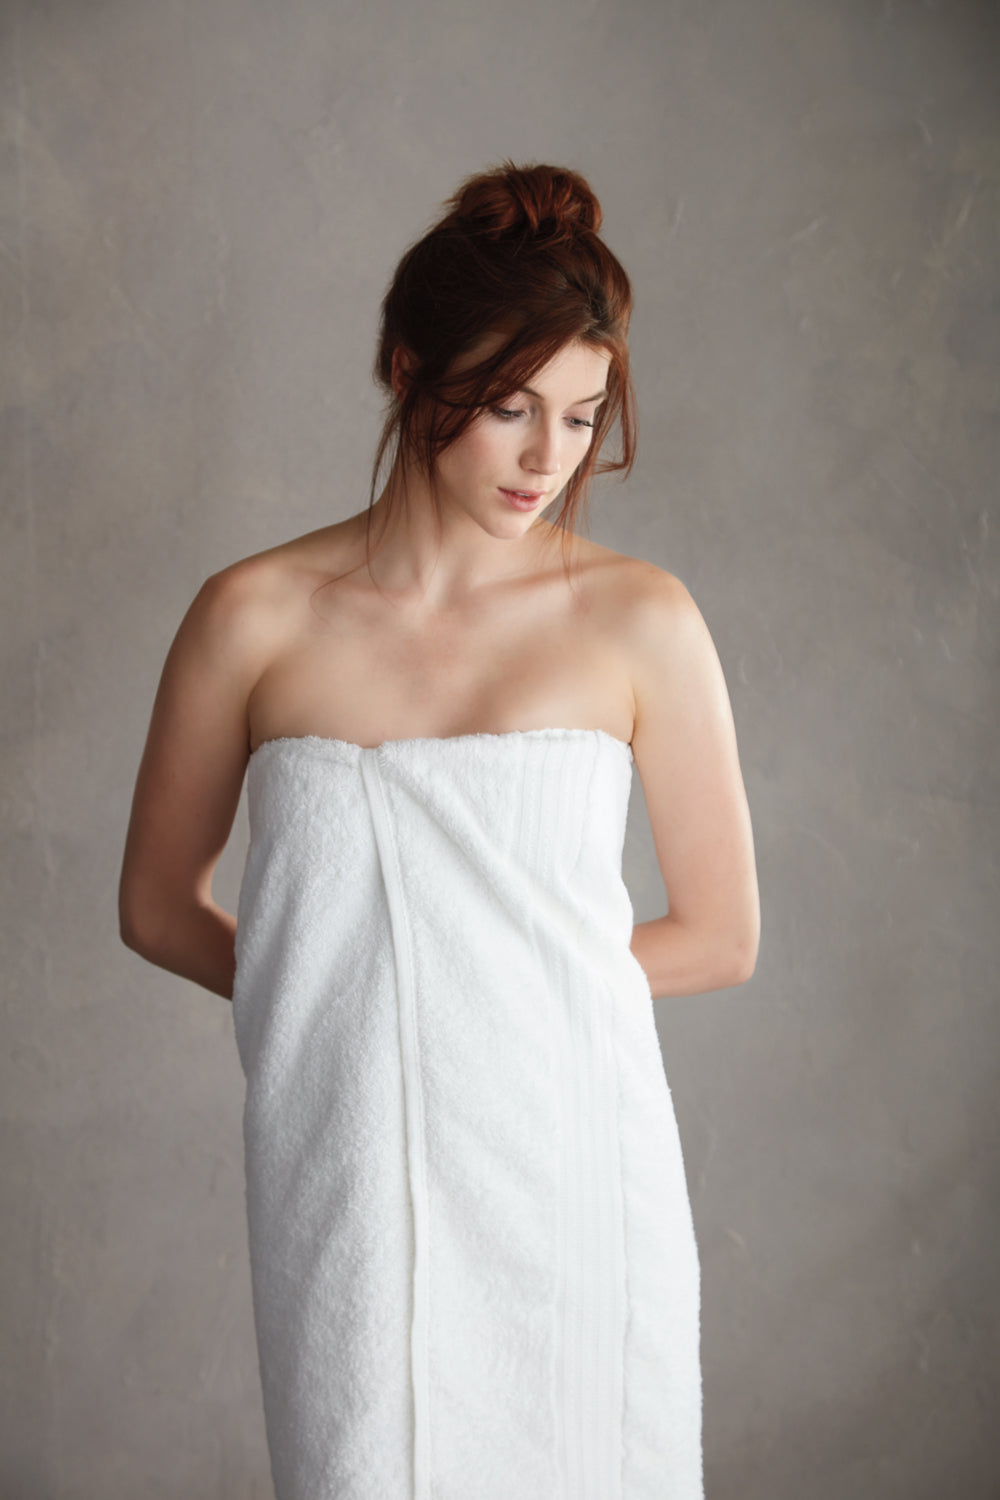 Woman wrapped in long white towel